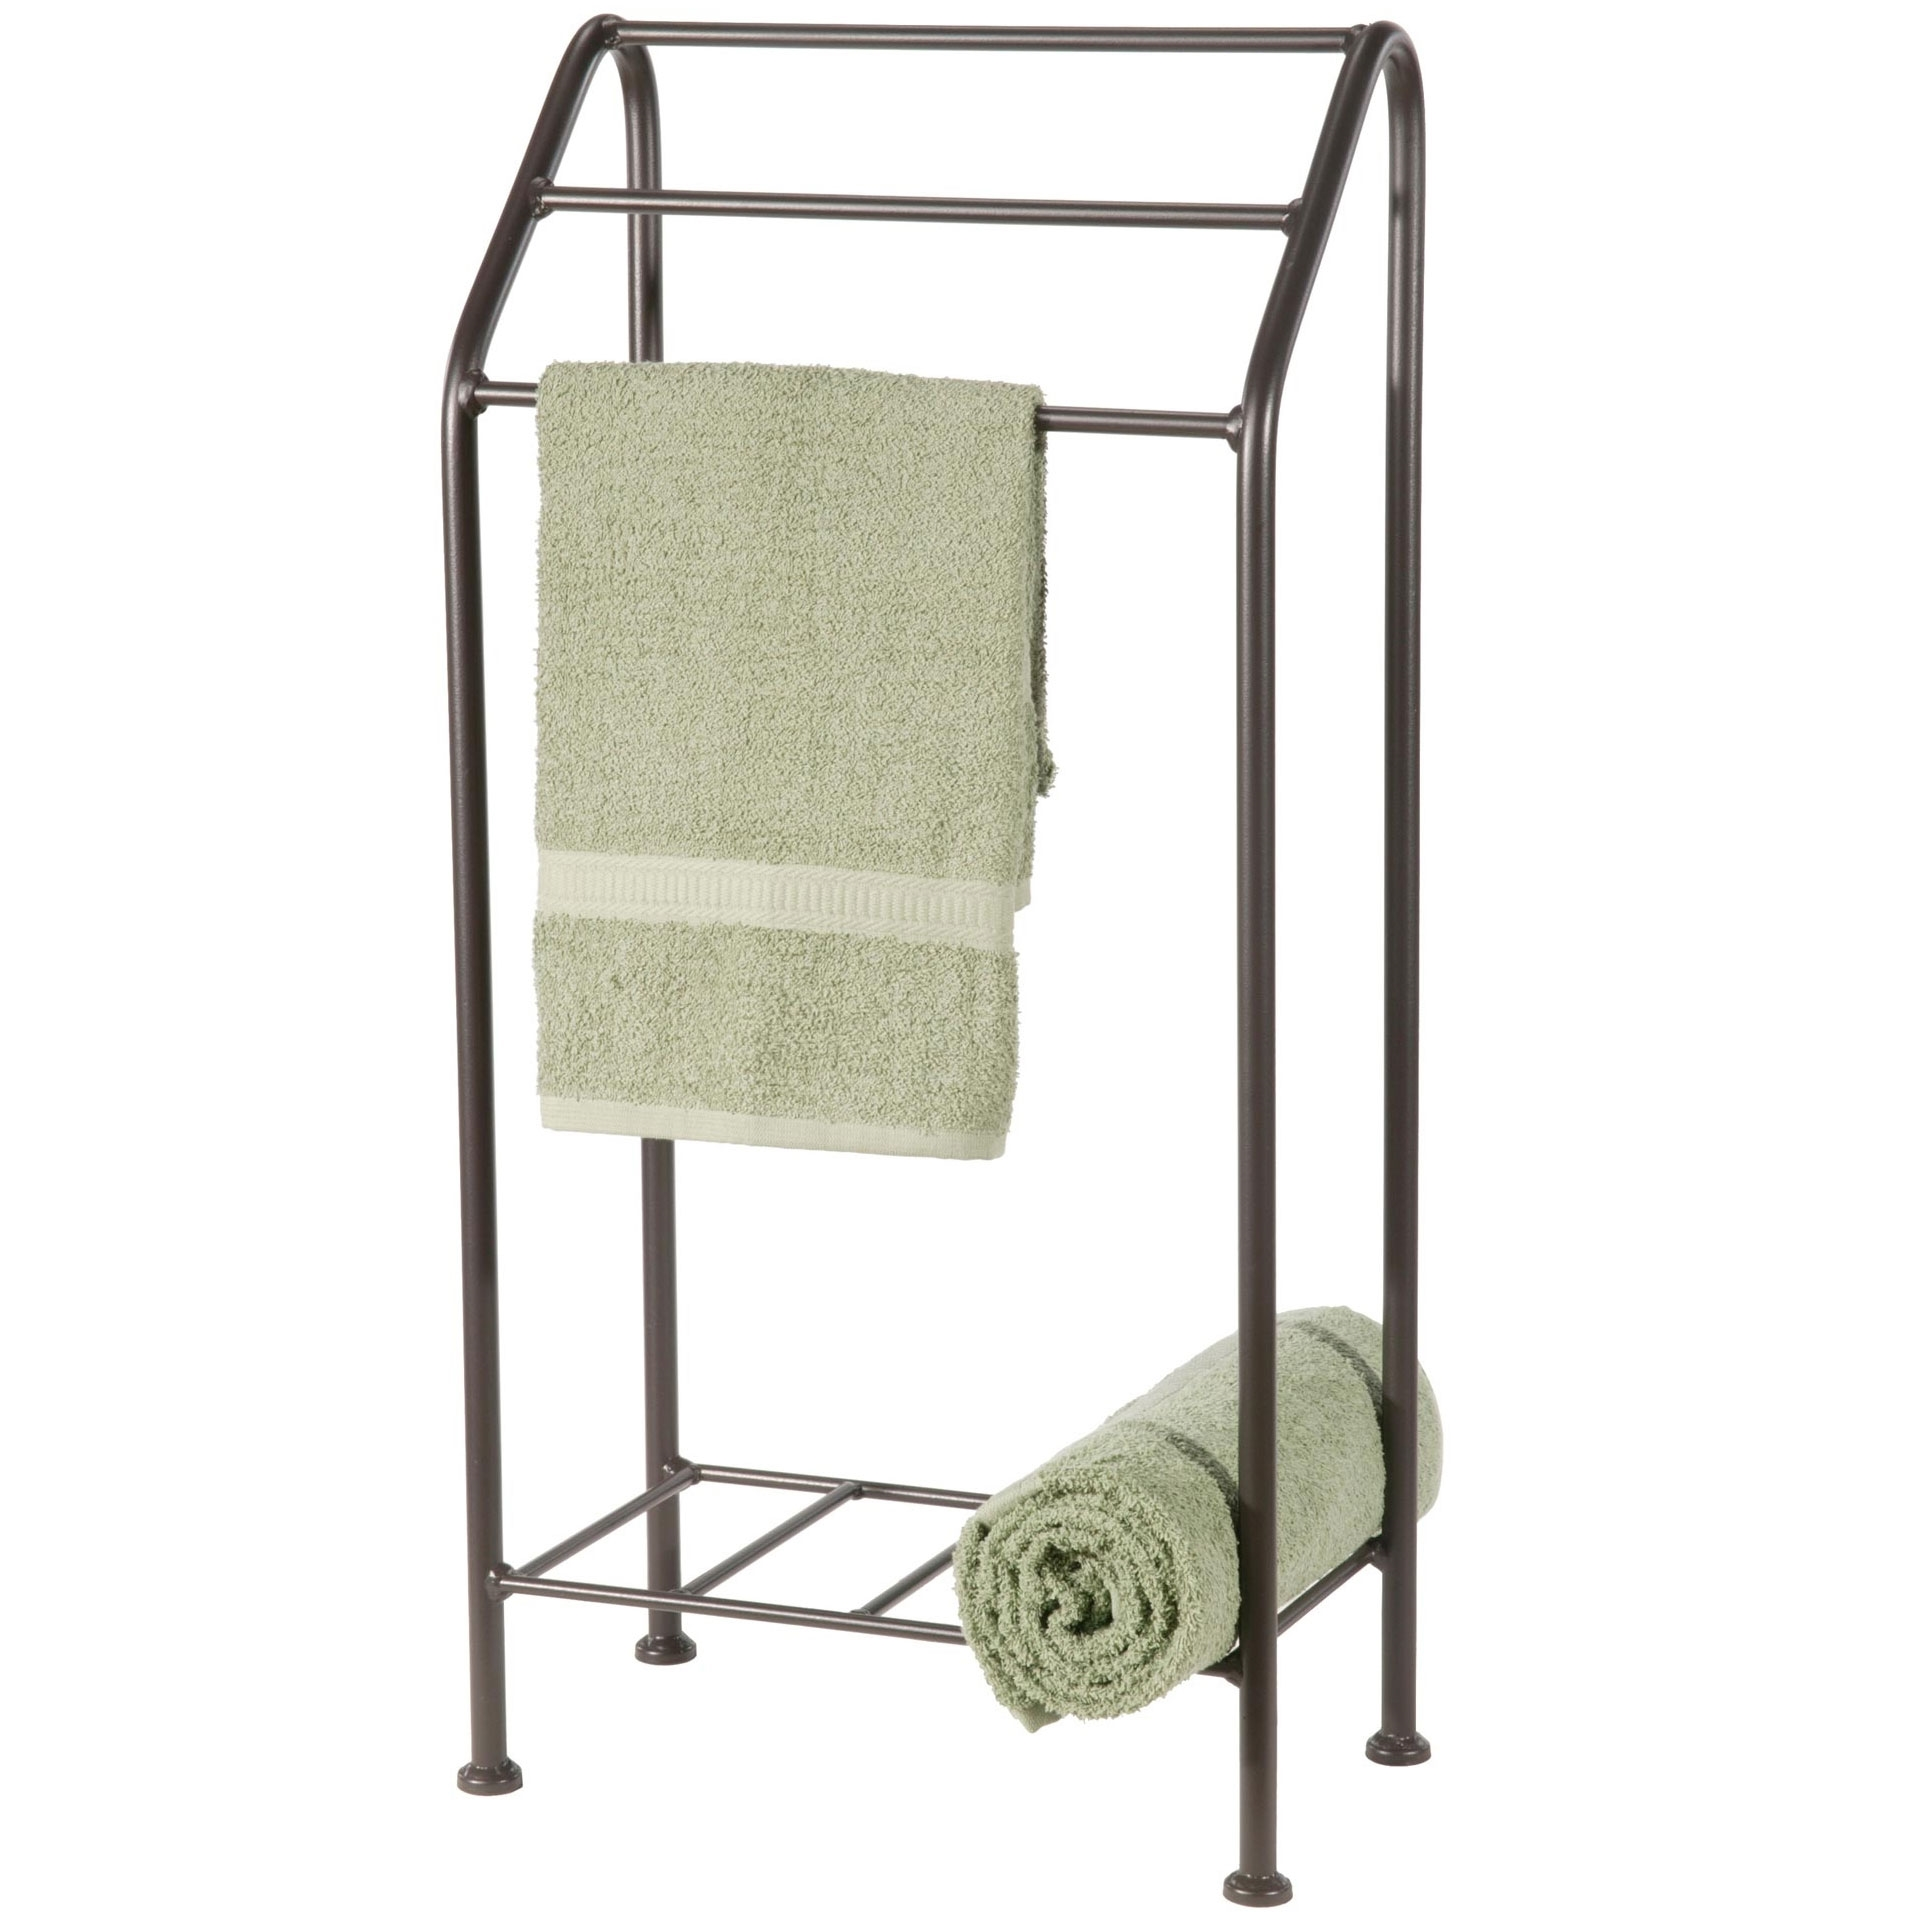 Wrought Iron Monticello Towel Rack By Stone County Ironworks